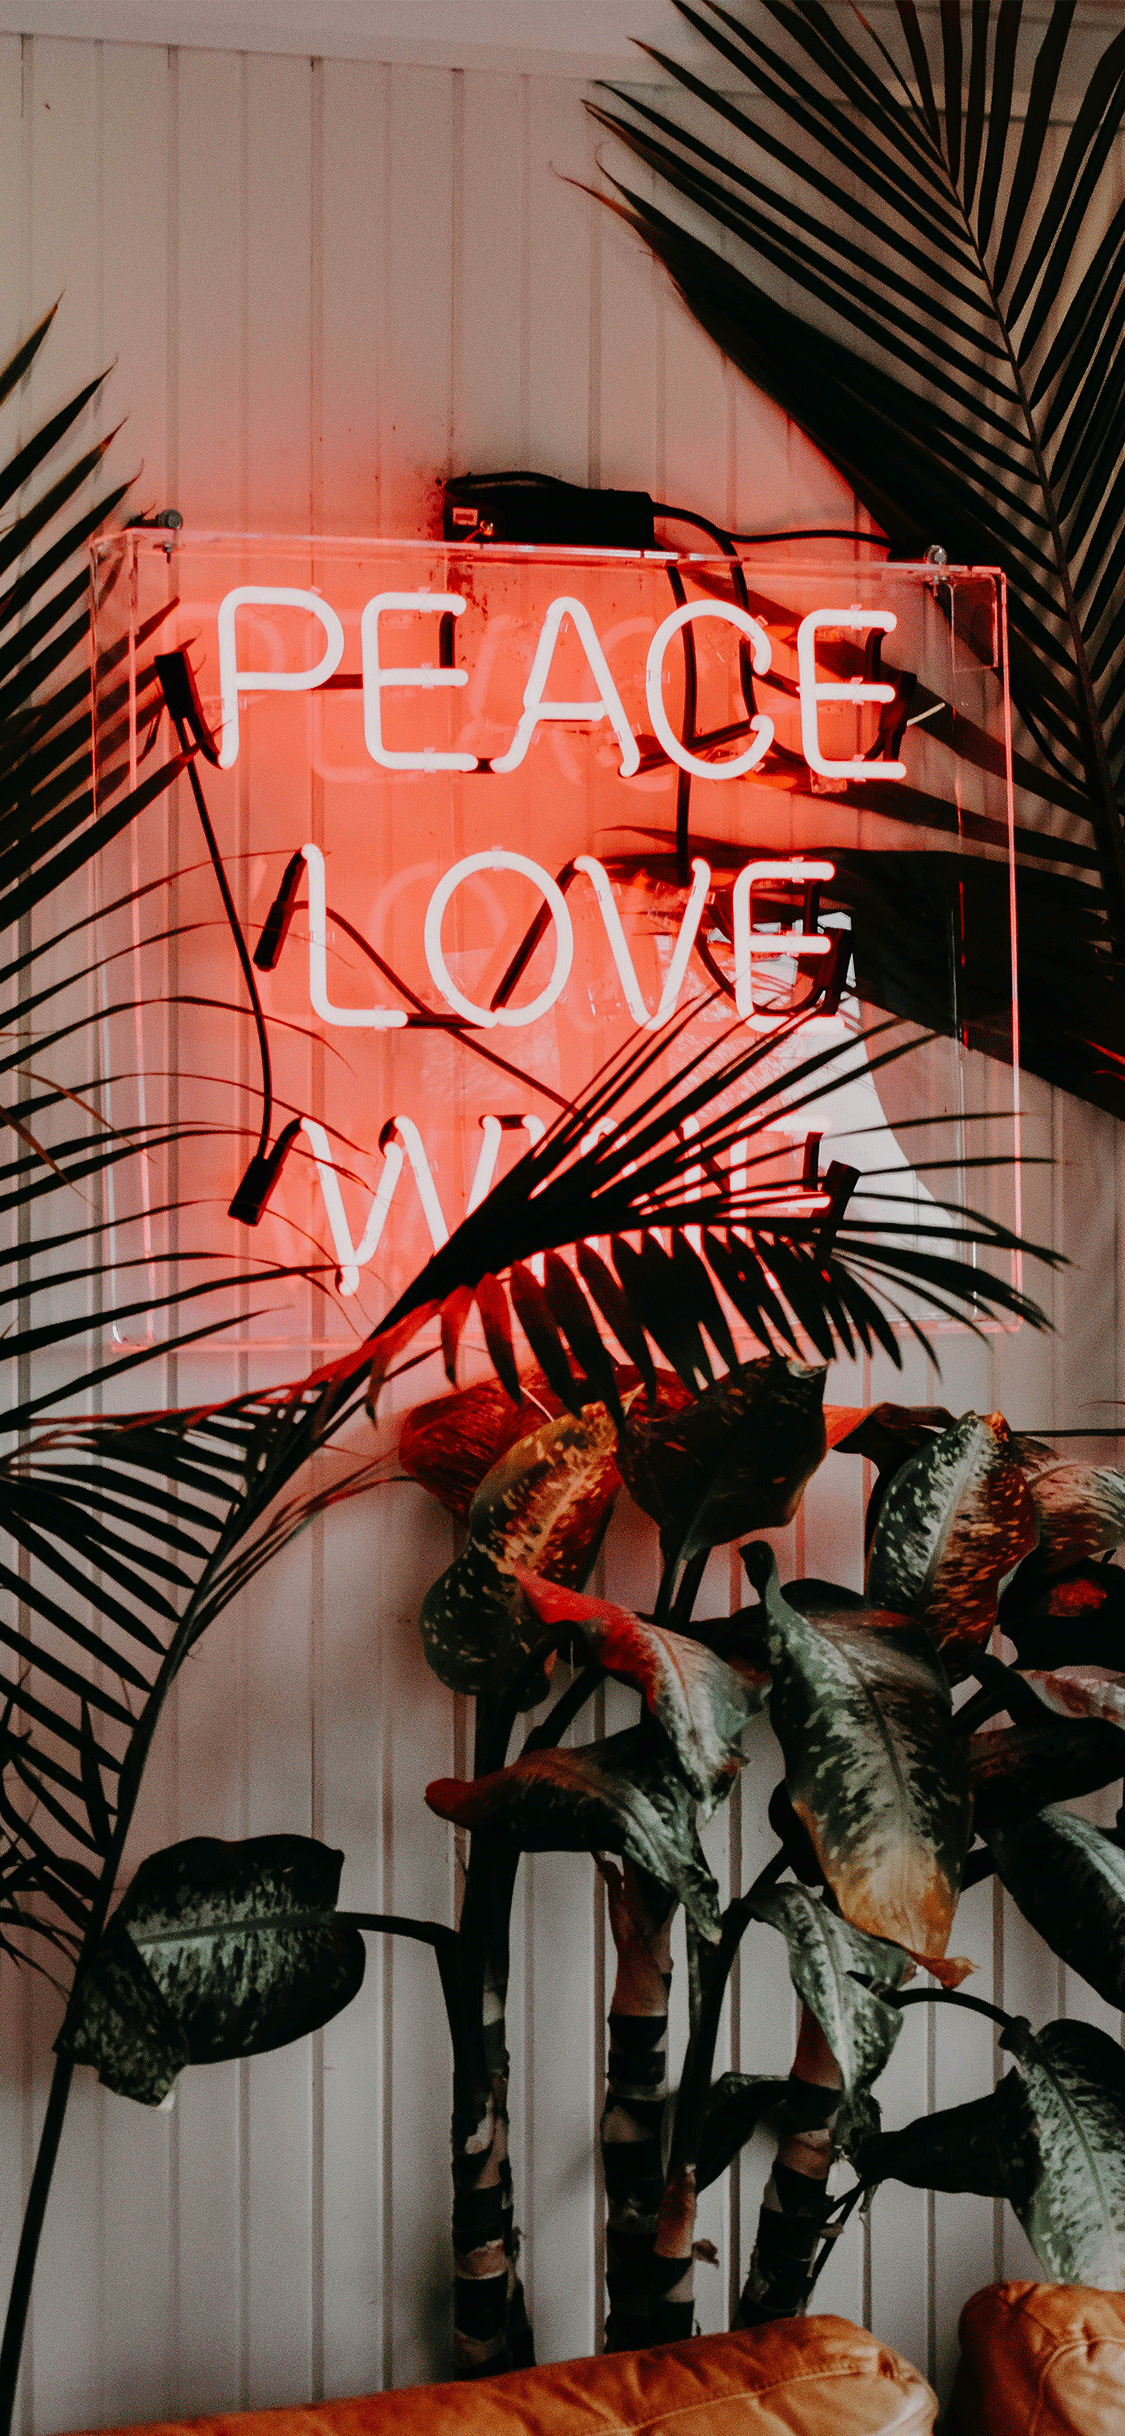 iPhone wallpaper neon sign peace love Fonds d'écran iPhone du 19/10/2018